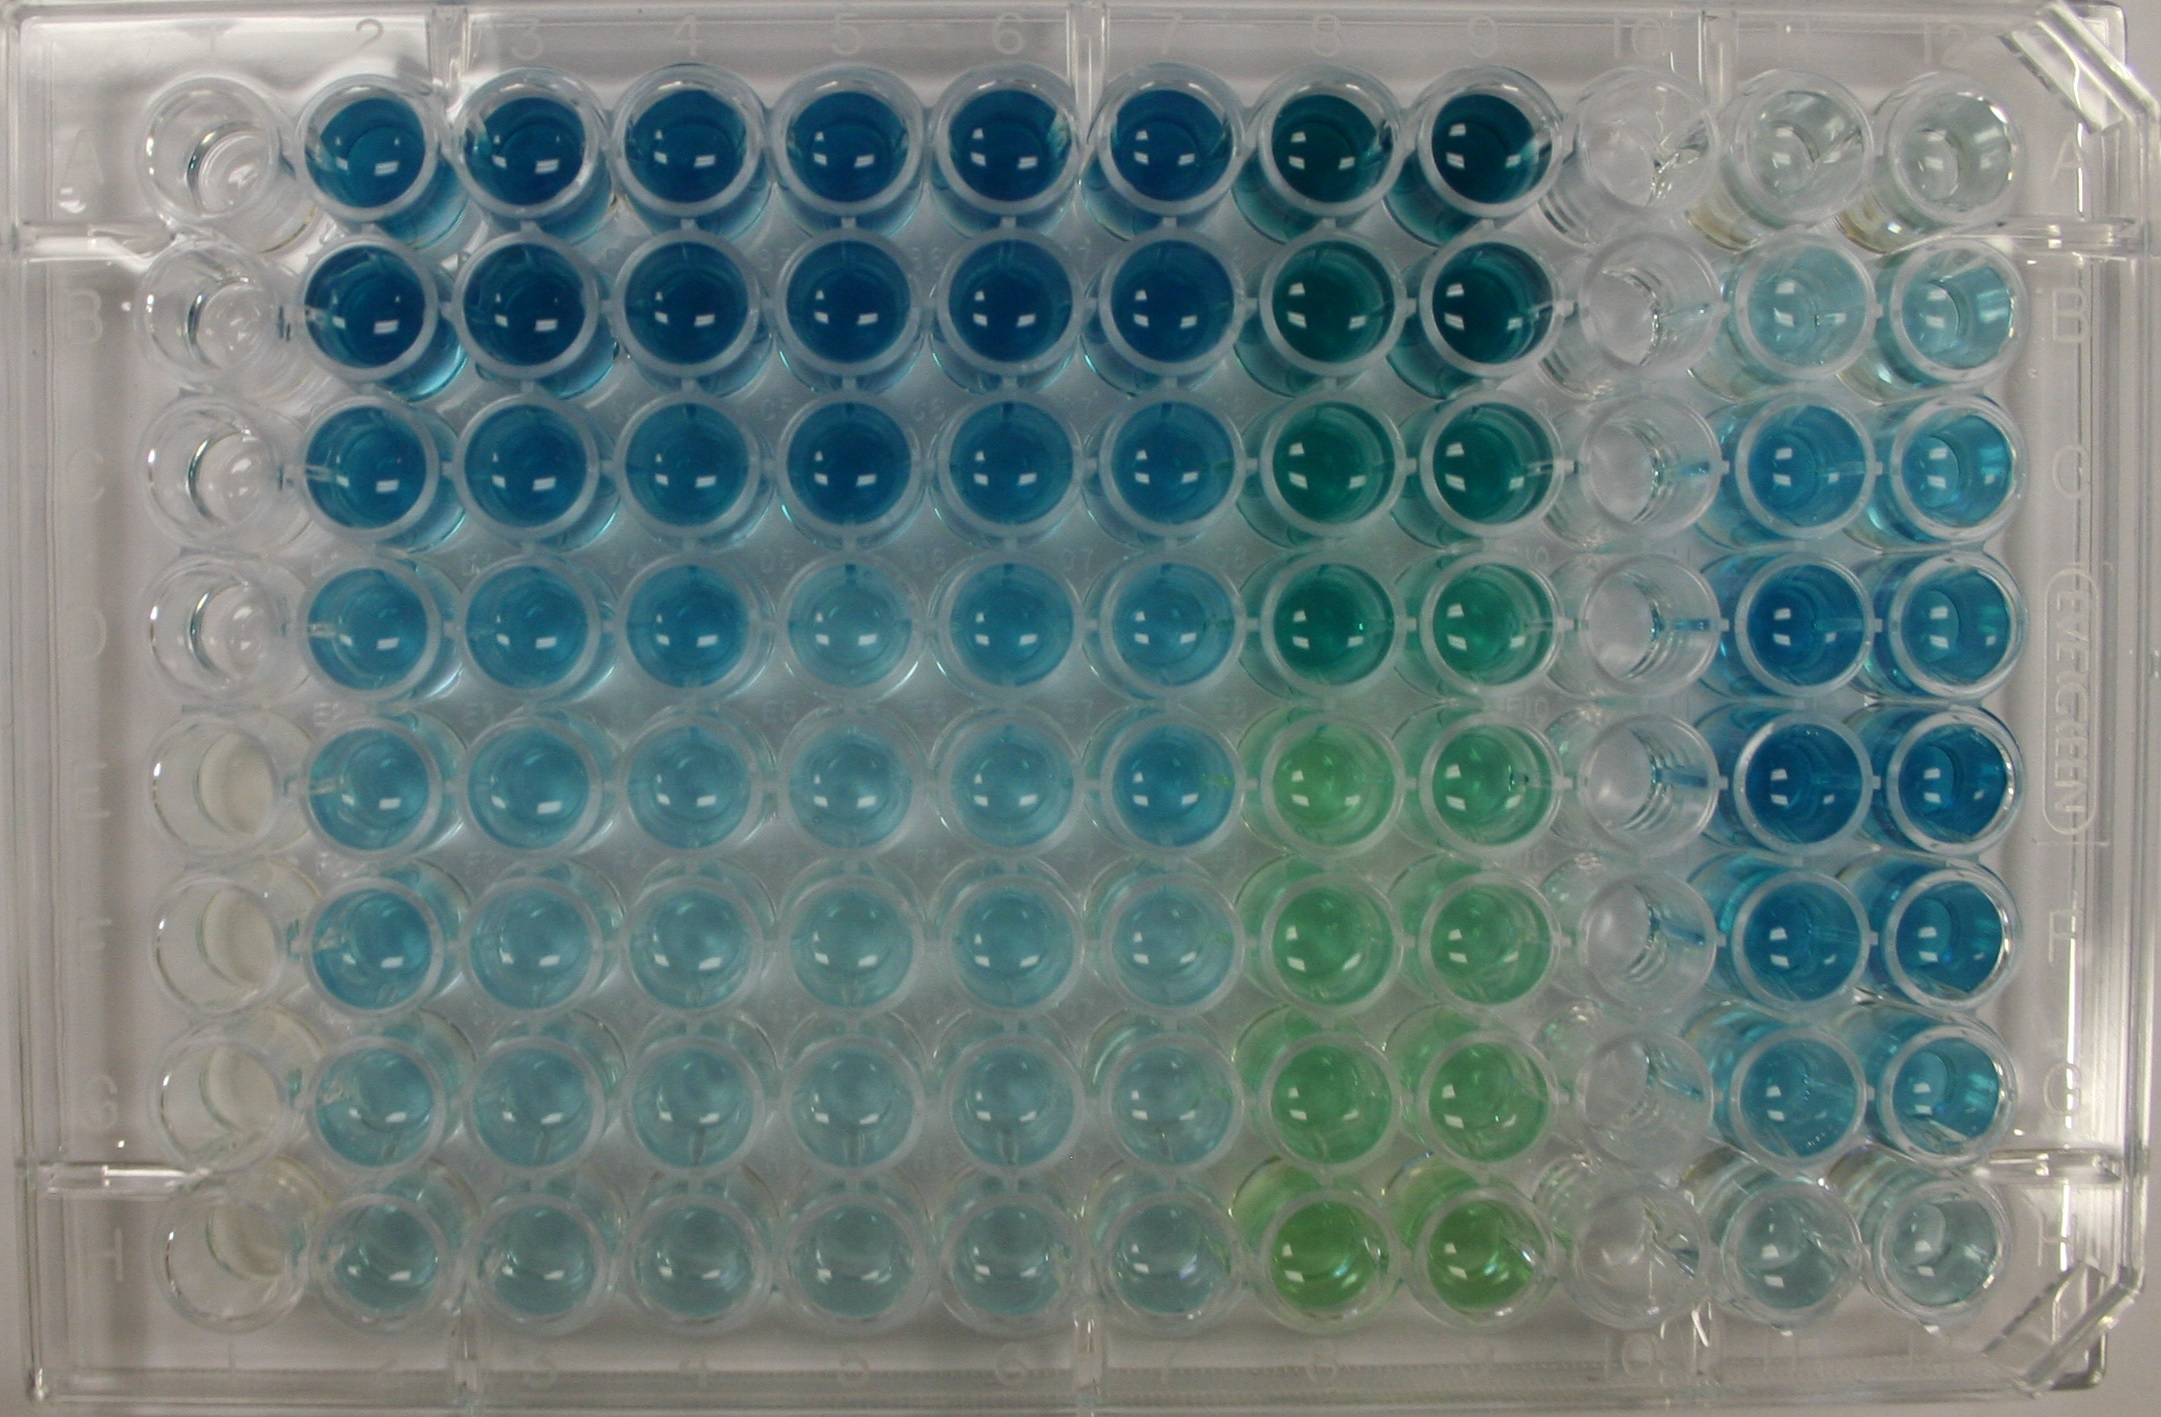 SOS-ChromoTest for genotoxicty